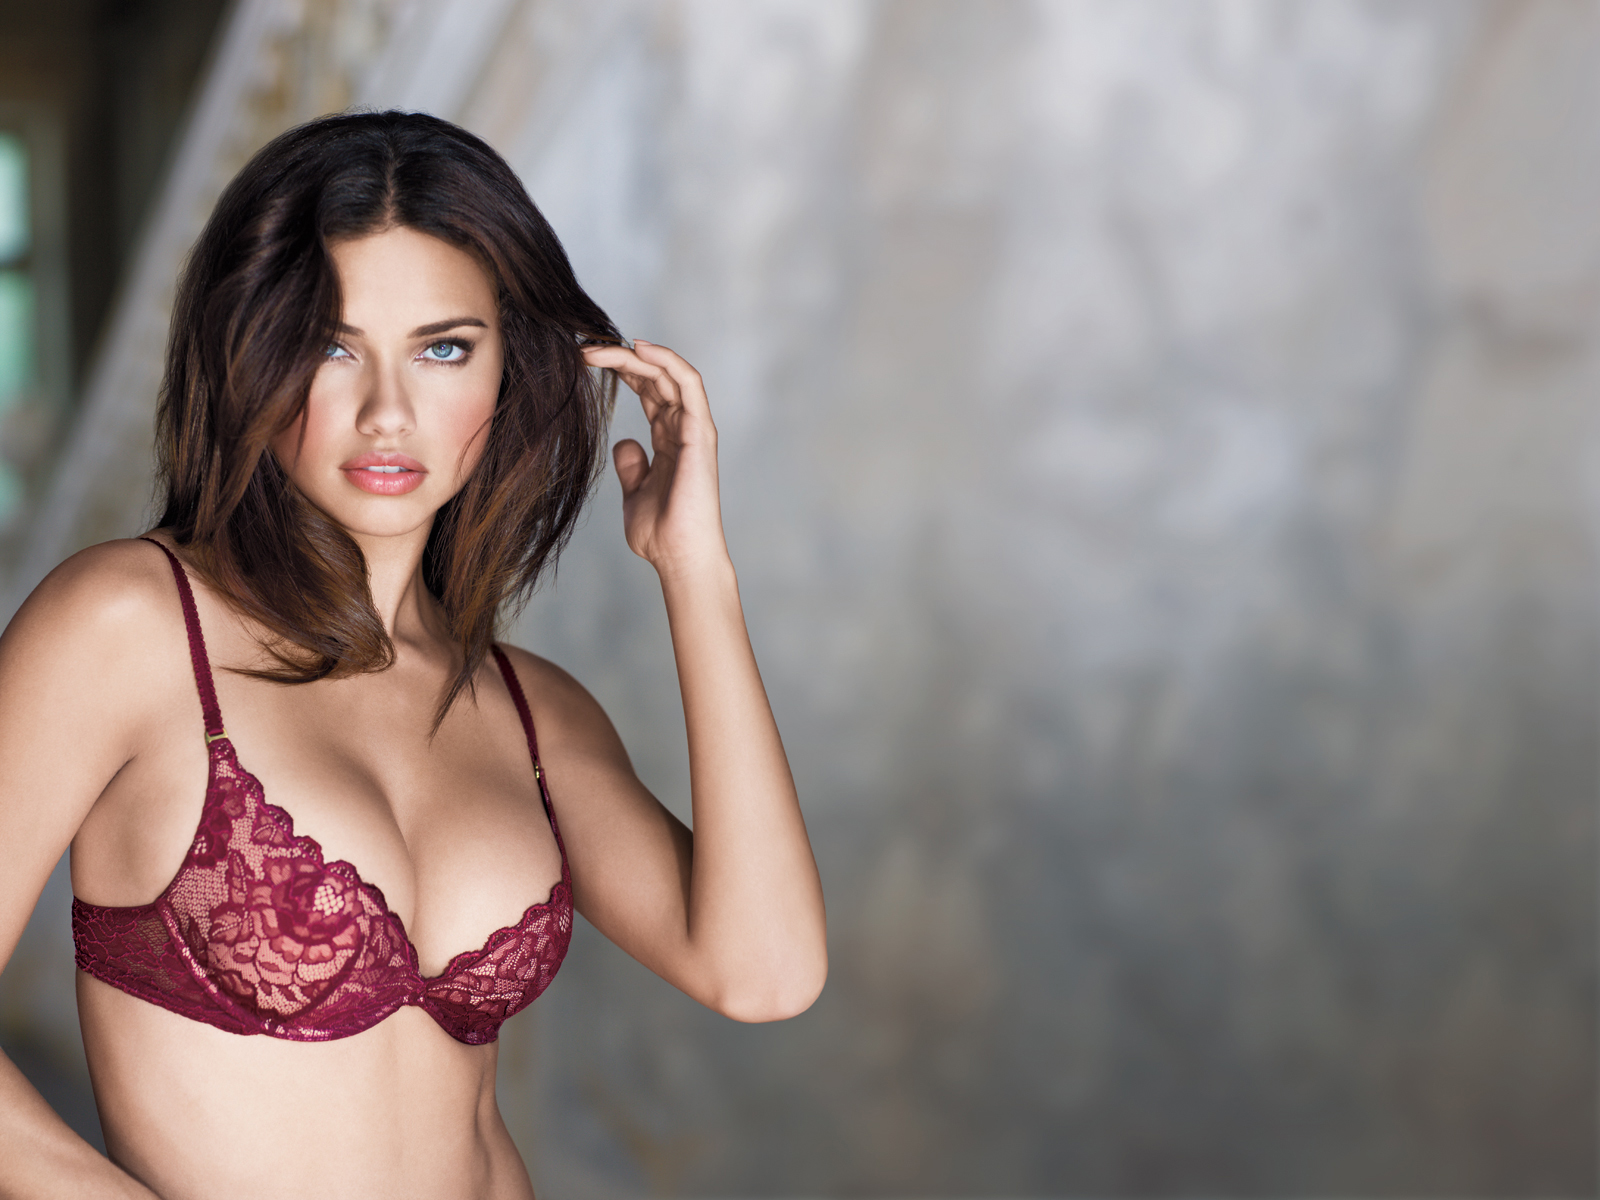 adriana lima photos - photo #31